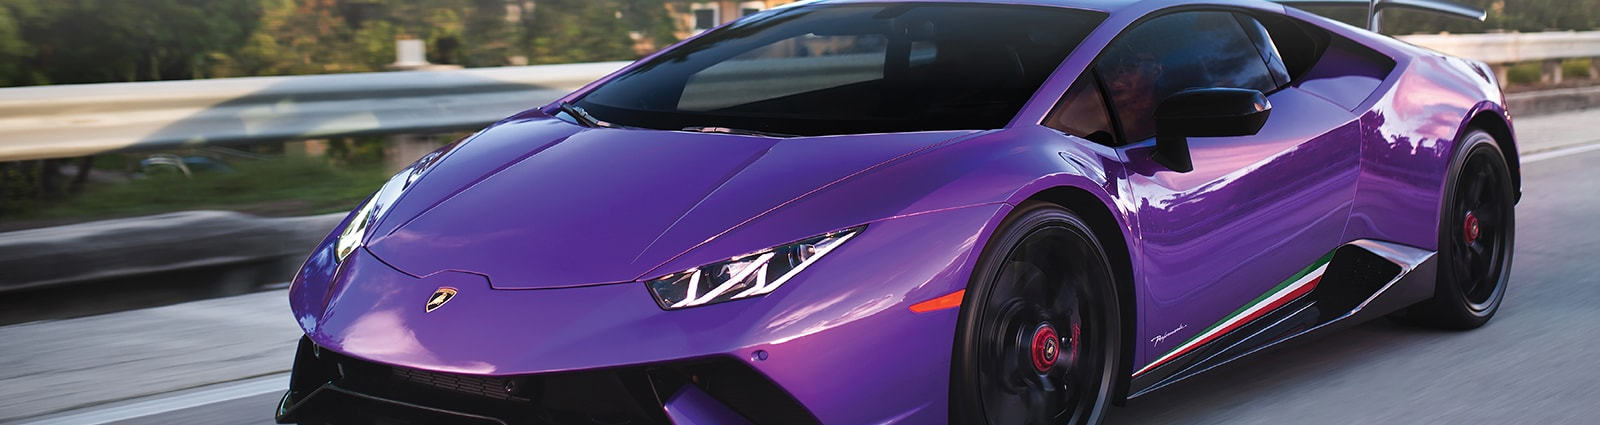 XPEL PRIME Window Tint on a purple Lamborghini